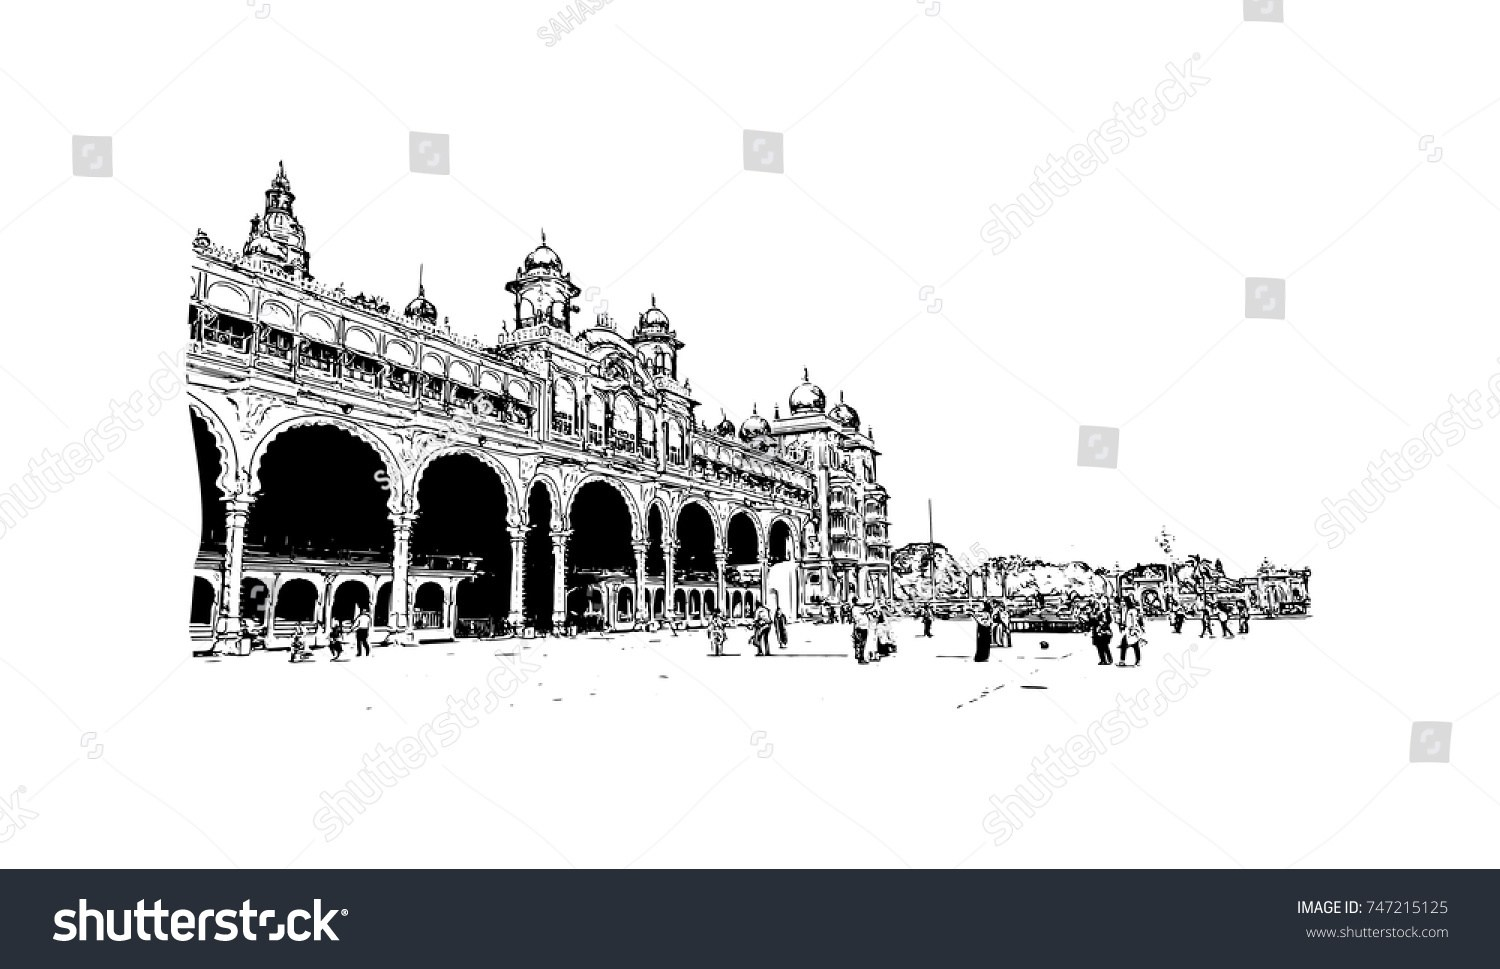 Mysore palace clipart black and white download Mysore palace clipart 9 » Clipart Portal black and white download